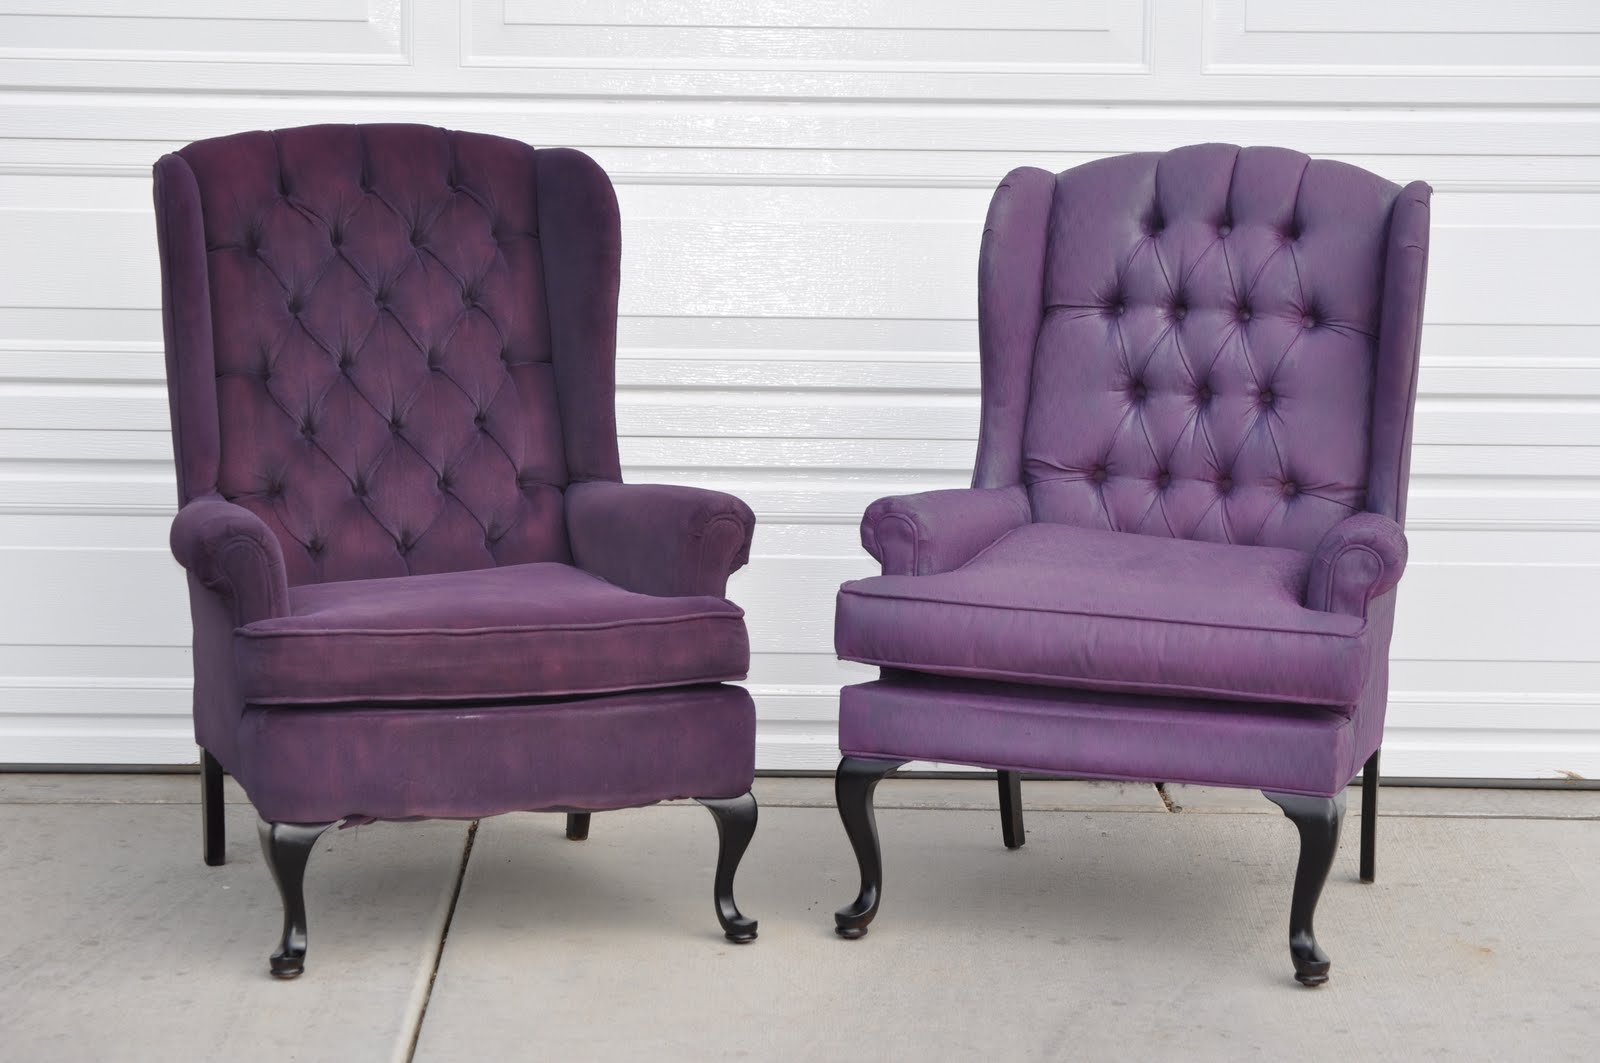 Elegant ... The Fireplace For Halloween (although It Was Fun To Have Them Outside  For A Day, LOL)! So Excited...delicious Purple Tufted Halloween Wingback  Chairs ...